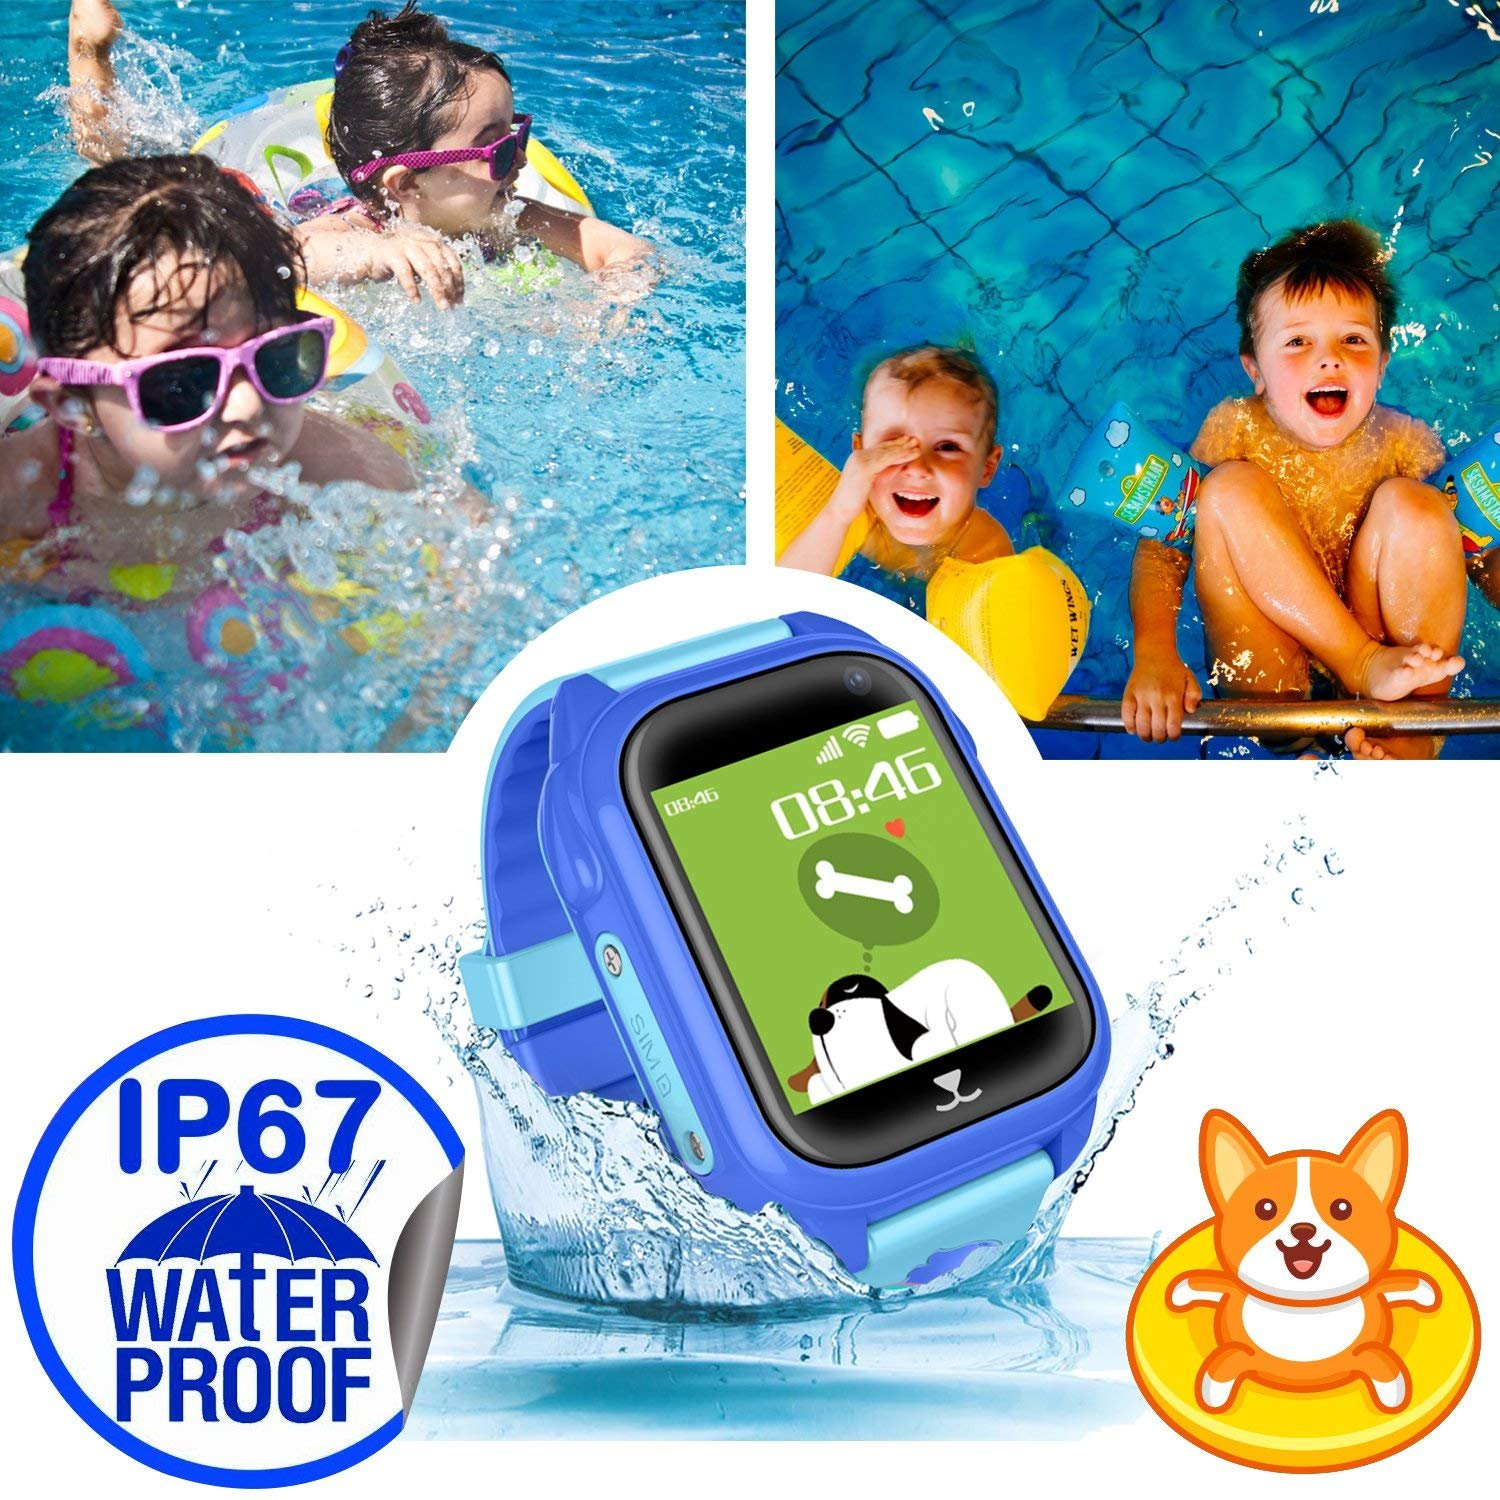 iCooLive Waterproof IP67 Kids Smart Watch Accurate GPS Tracker with FREE SIM CARD for Kid Boys Girls Smartwatch Phone watch Game watch with SOS Call Camera Electronic Learning Toys Birthday Gift by iCooLive (Image #4)